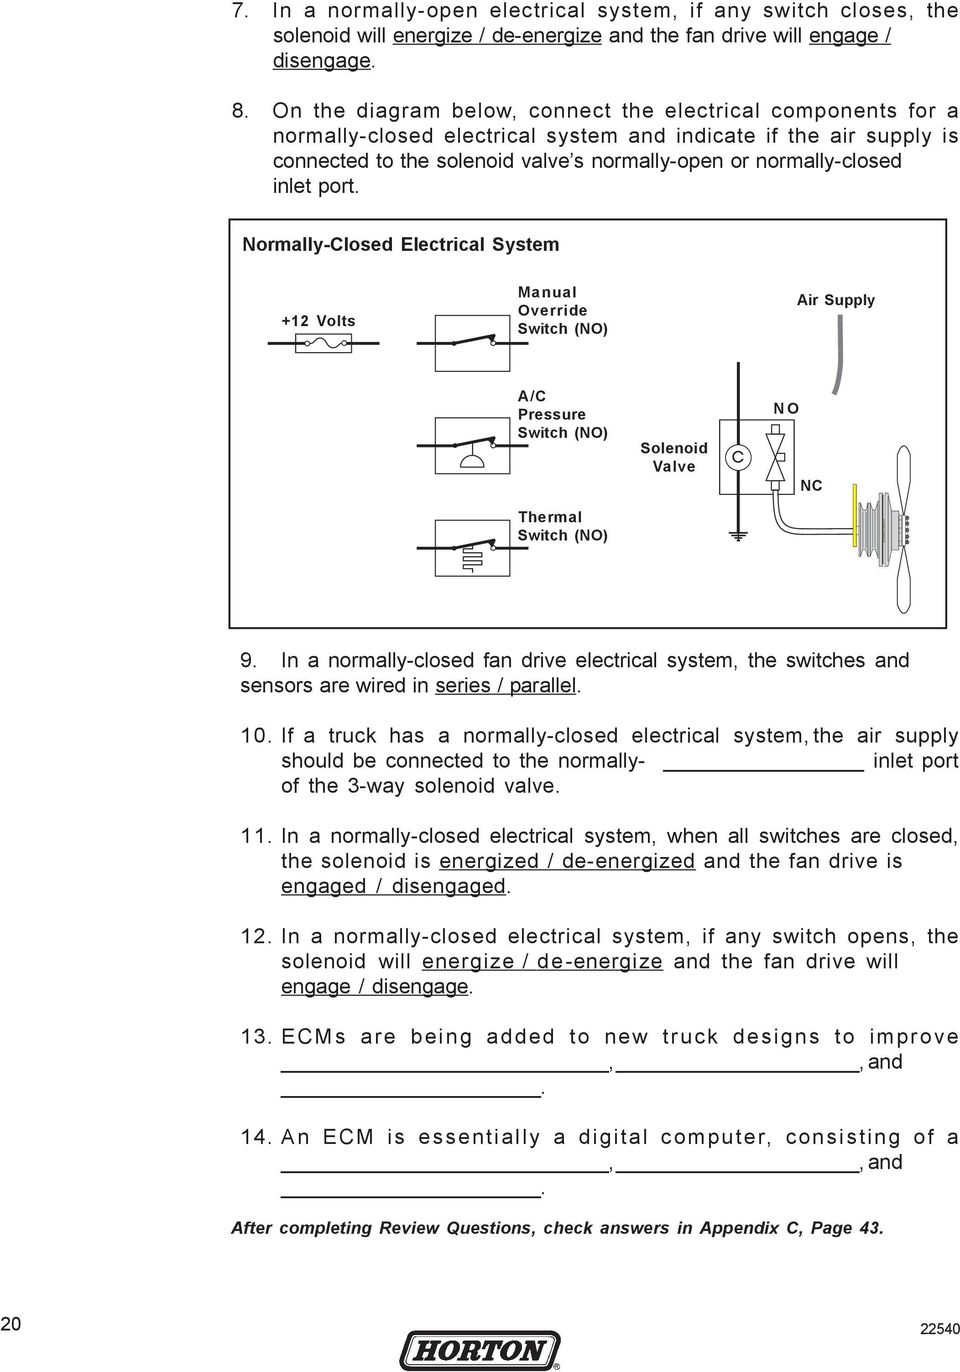 Heavy Duty Fan Drive Maintenance Training Manual Pdf Kenworth Engine Solenoid Wiring Diagram Normally Closed Electrical System 12 Volts Override Switch No